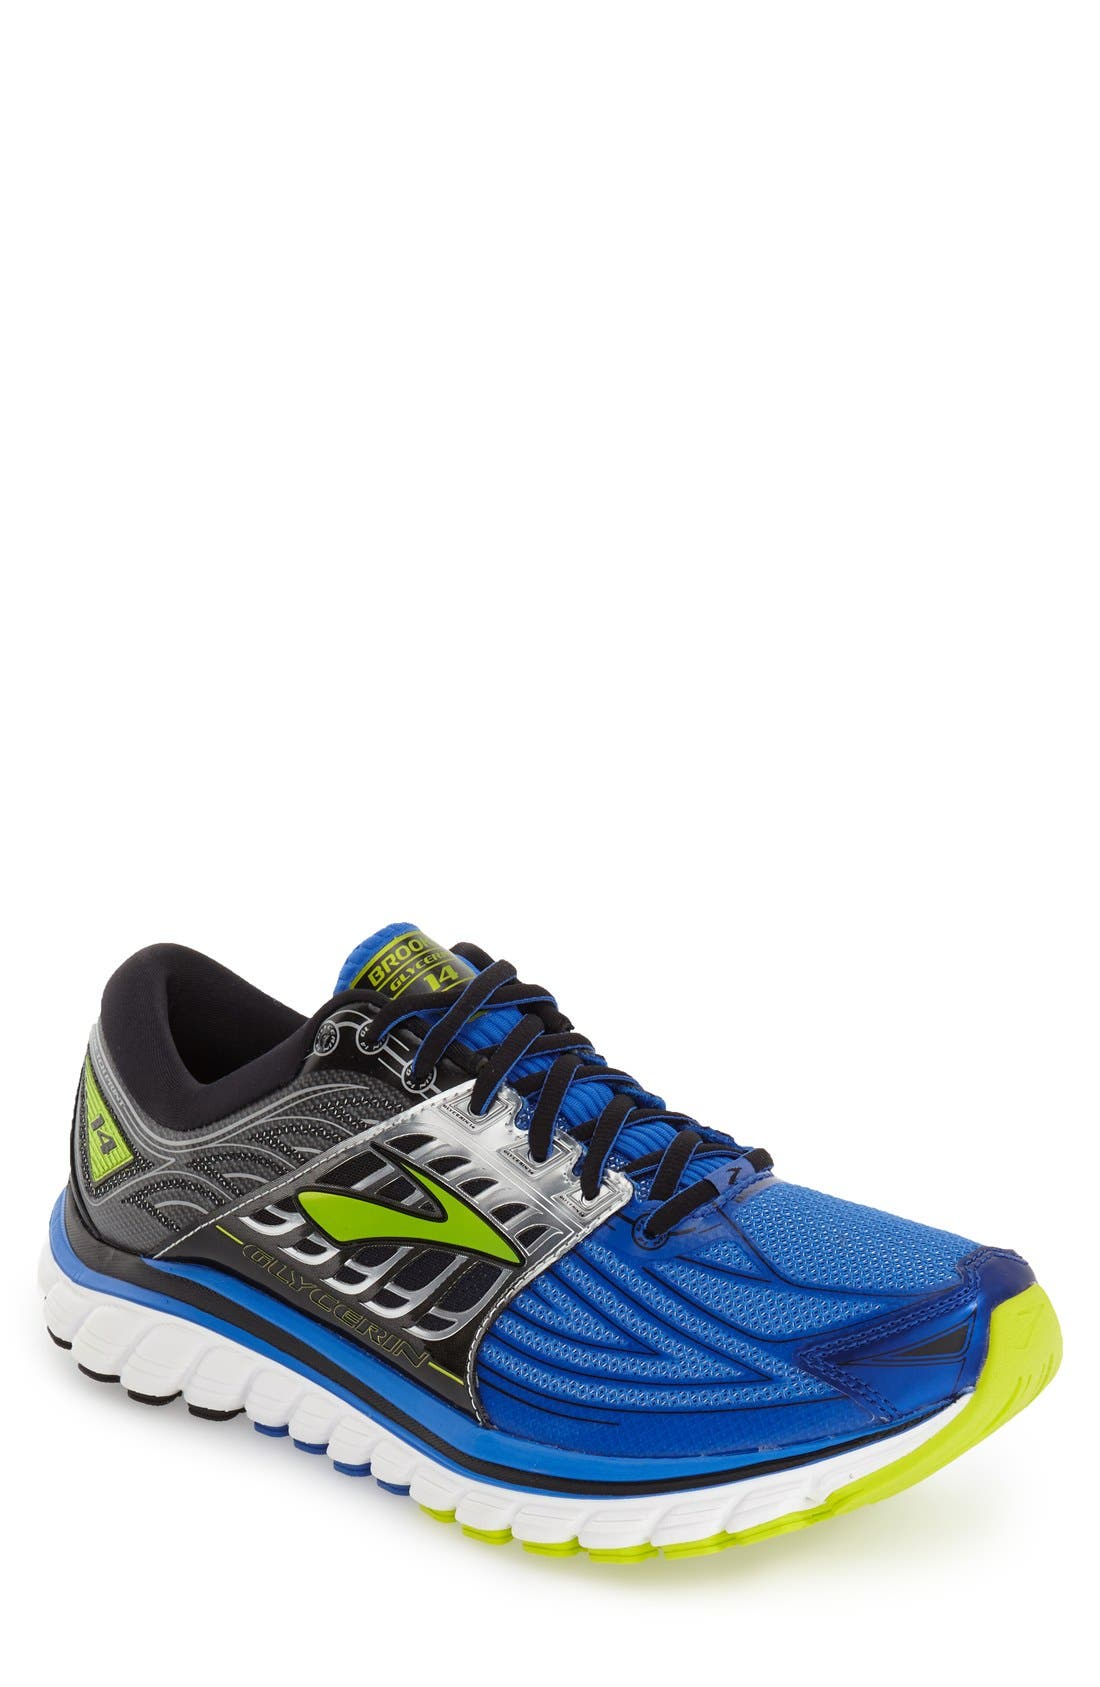 'Glycerin 14' Running Shoe,                         Main,                         color, Electric Blue/ Black/ Punch